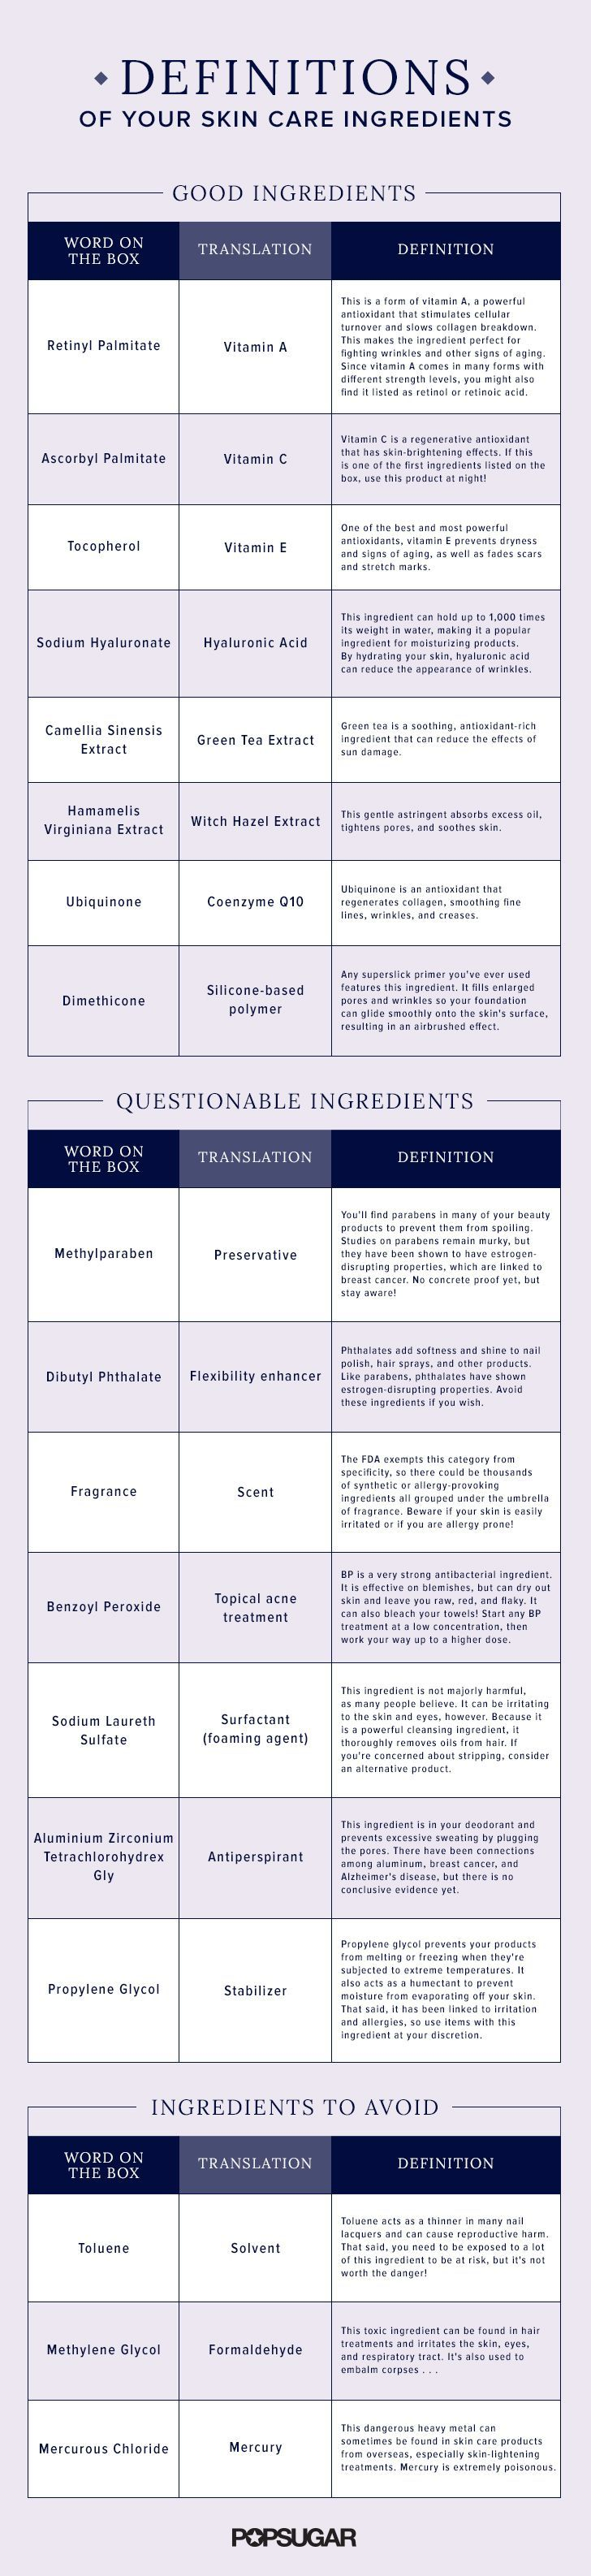 Not sure what all the ingredients in your favorite skin care products really are? Use this comprehensive guide to decipher the real definition of each ingredient. Find out if your beauty products are as safe as they seem!